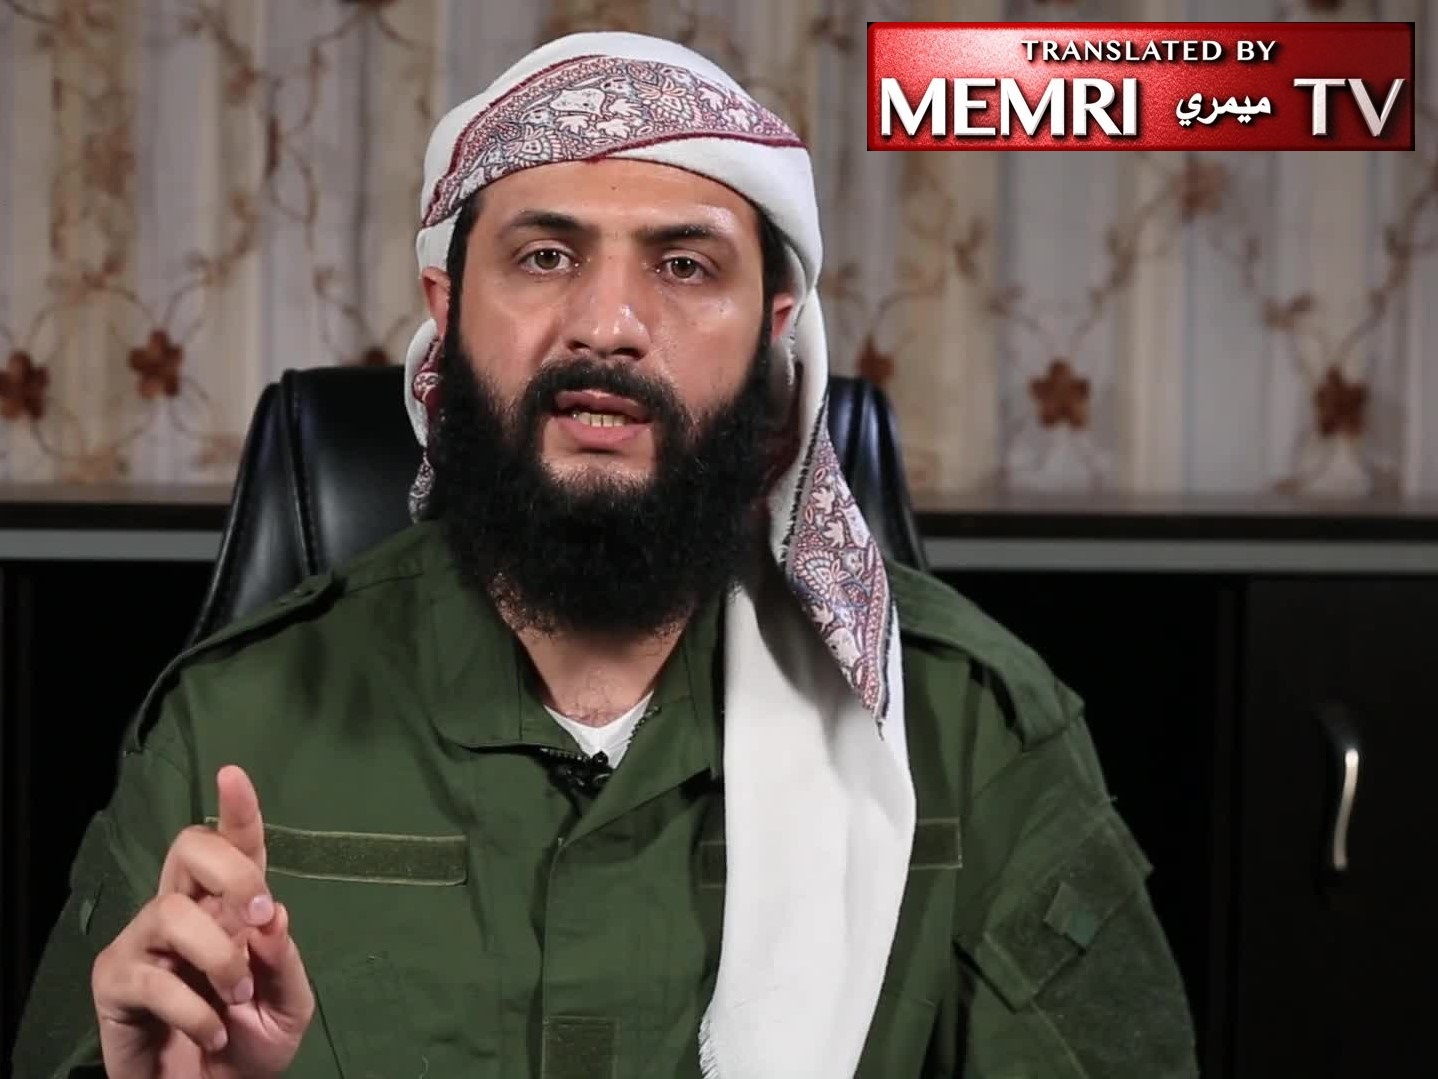 Hay'at Tahrir Al-Sham Leader Abu Muhammad Al-Joulani in Eid Al-Adha Address: We Will Not Surrender to the Criminal Regime or Compromise on Our Weapons